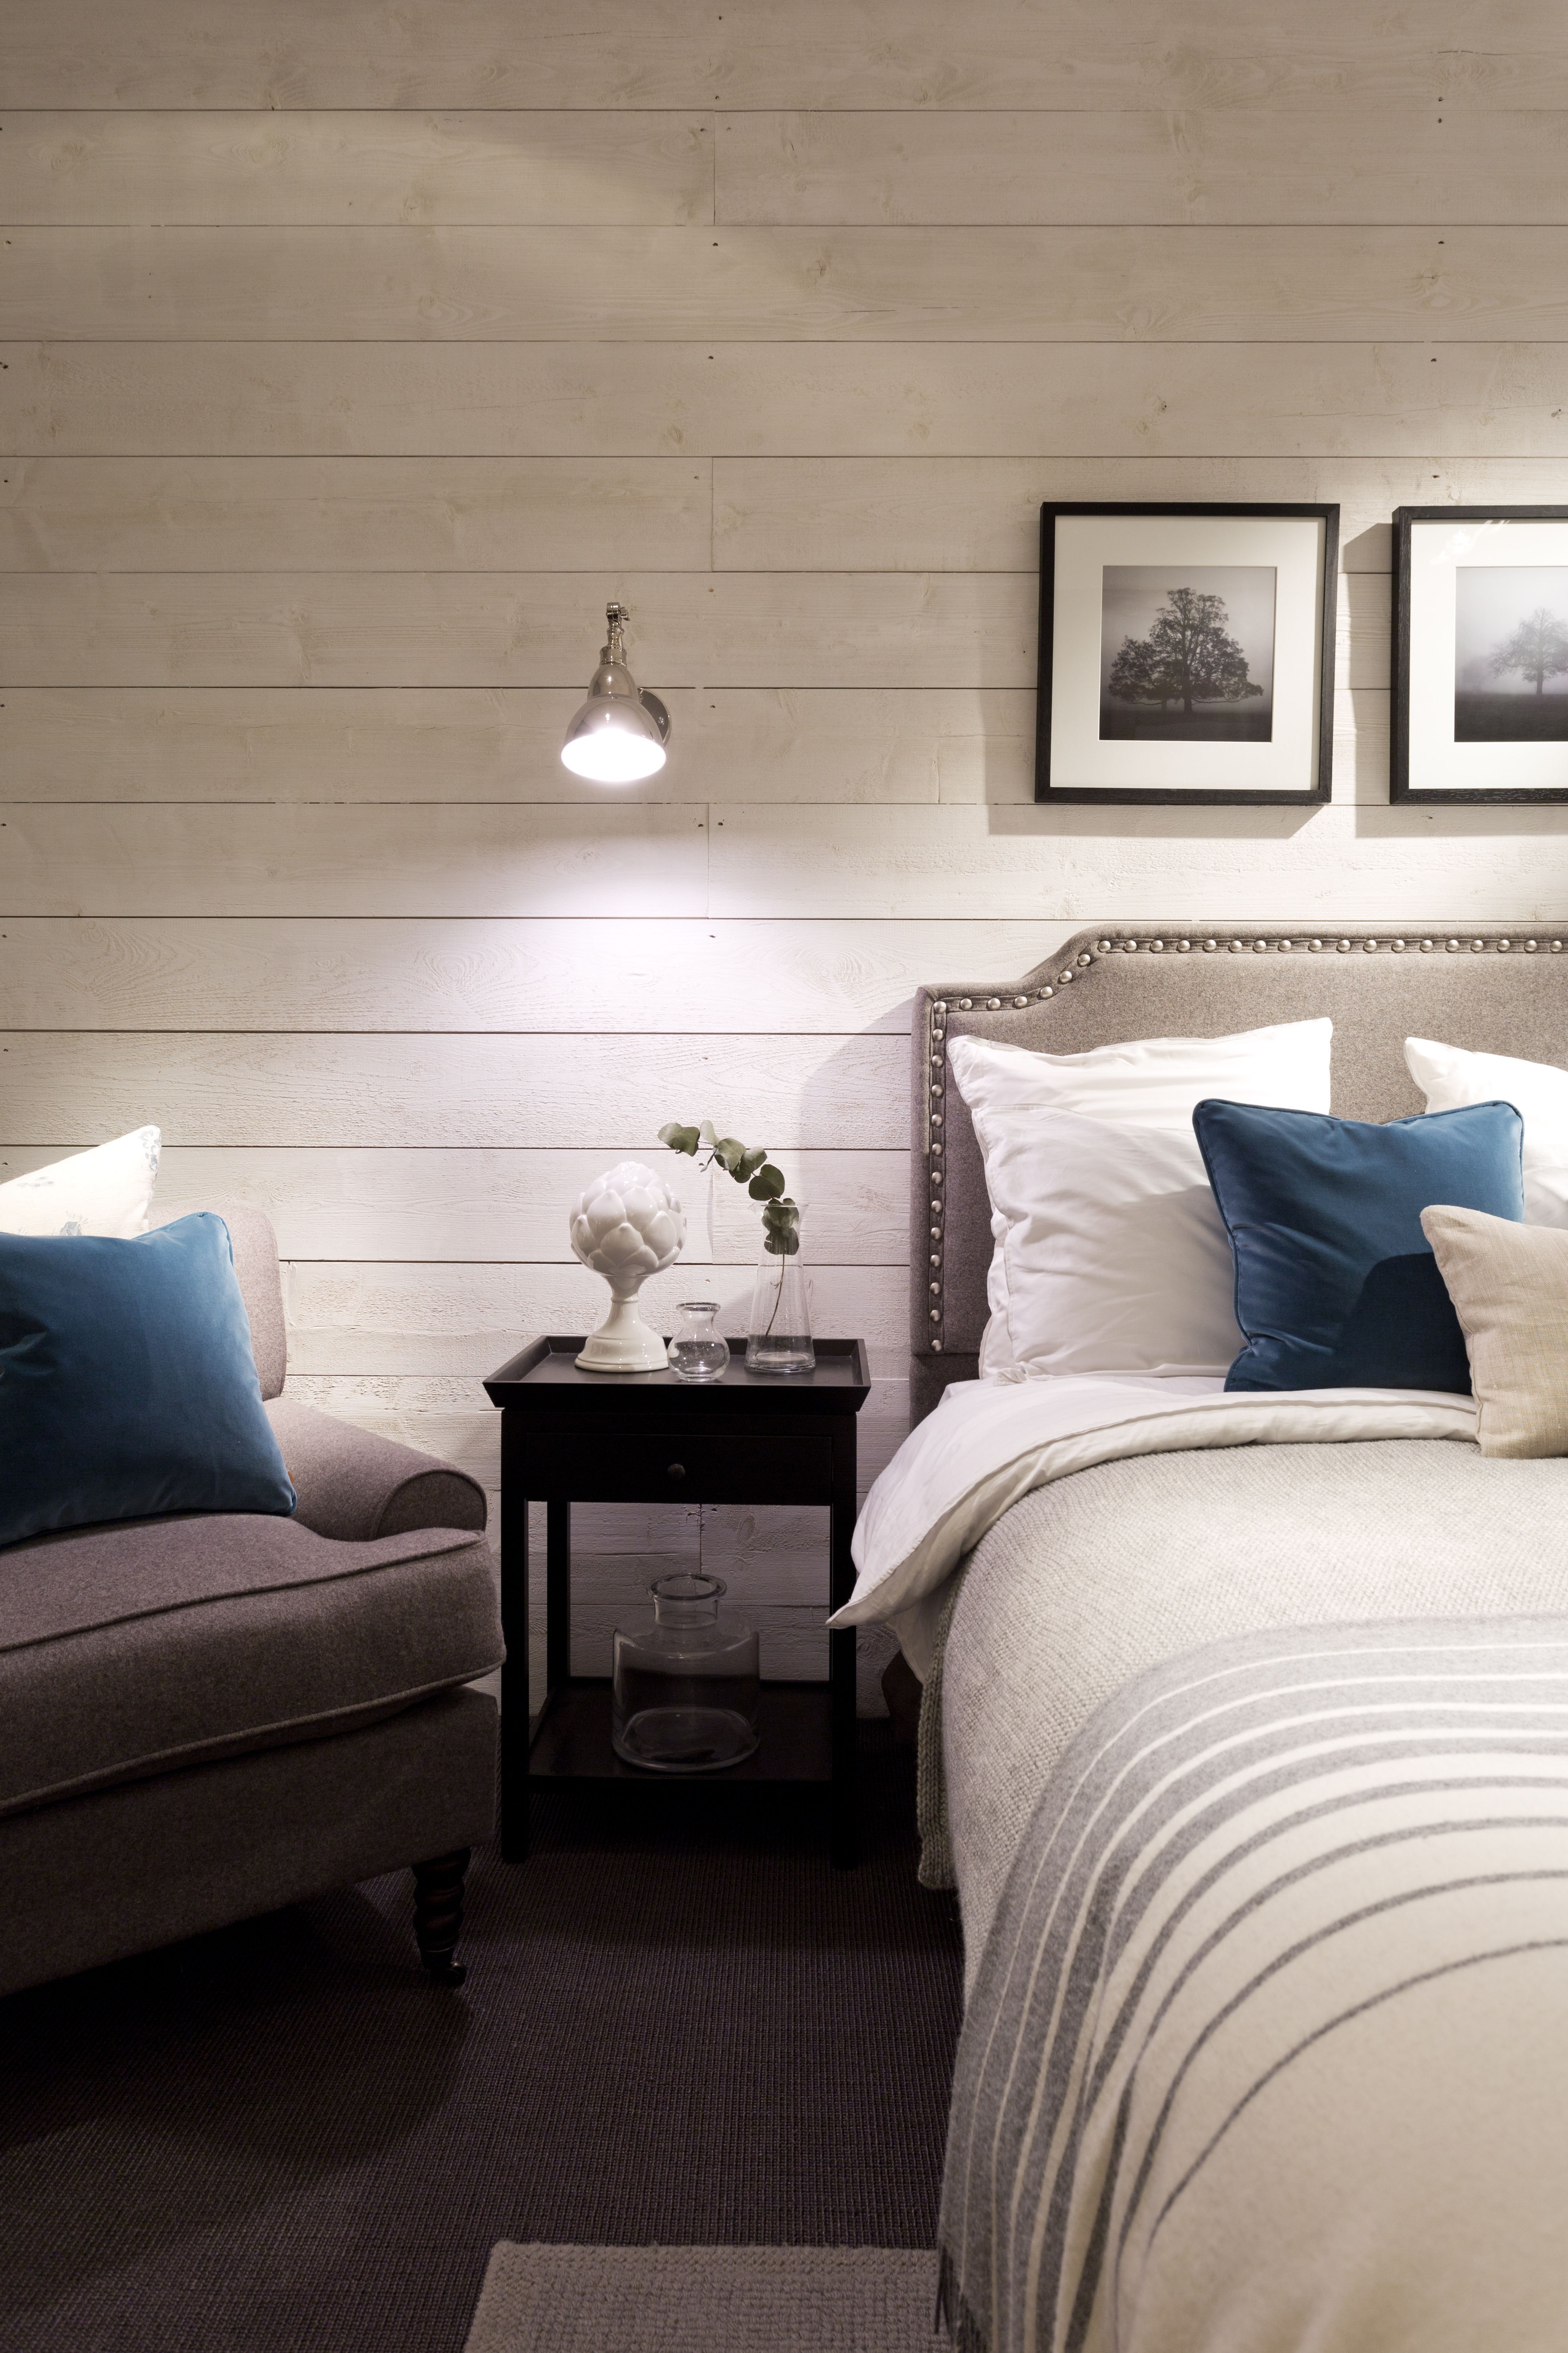 35+ Wooden wall cladding bedroom ppdb 2021